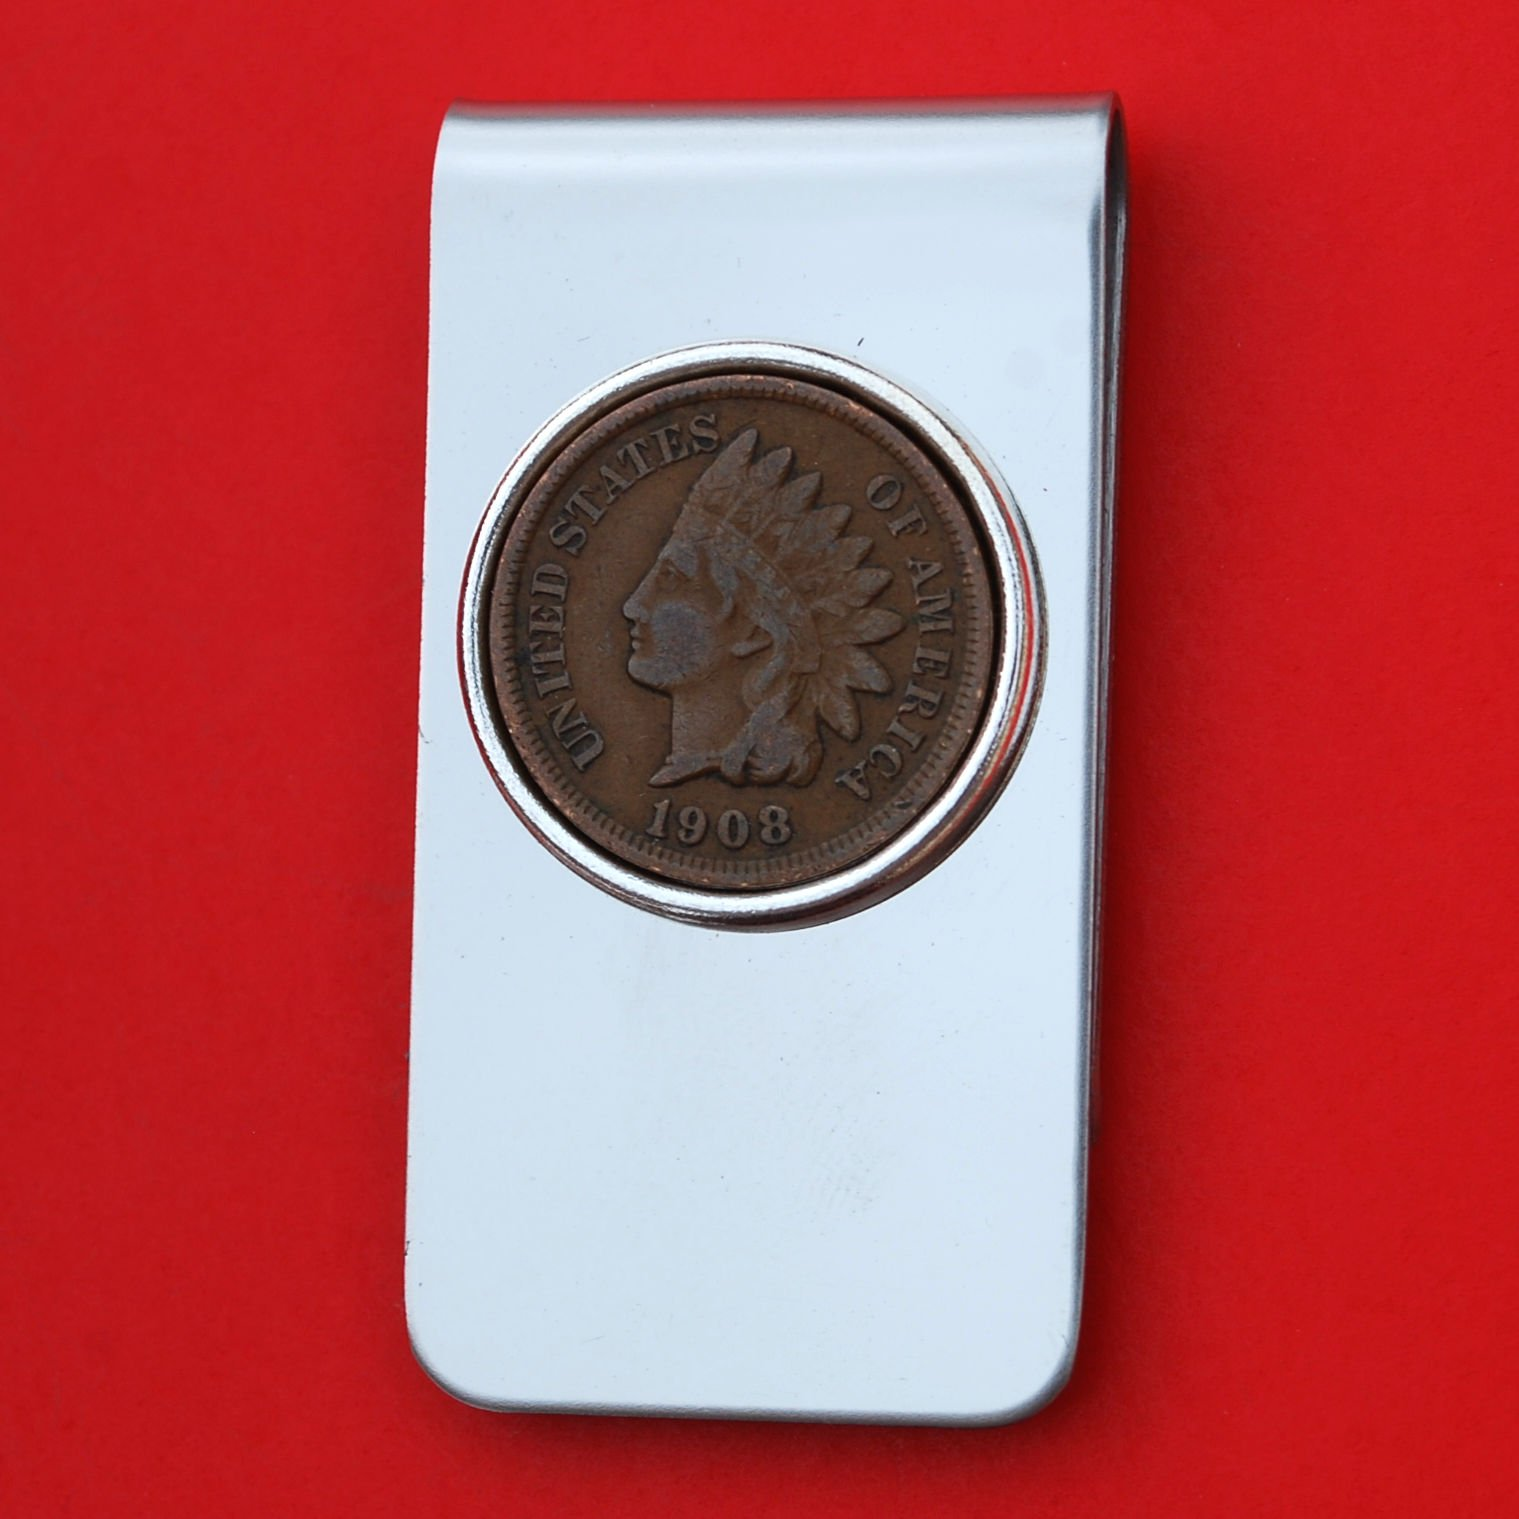 US 1908 Indian Head Small Cent Coin Silver Plated Stainless Steel Money Clip NEW - Lucky Penny